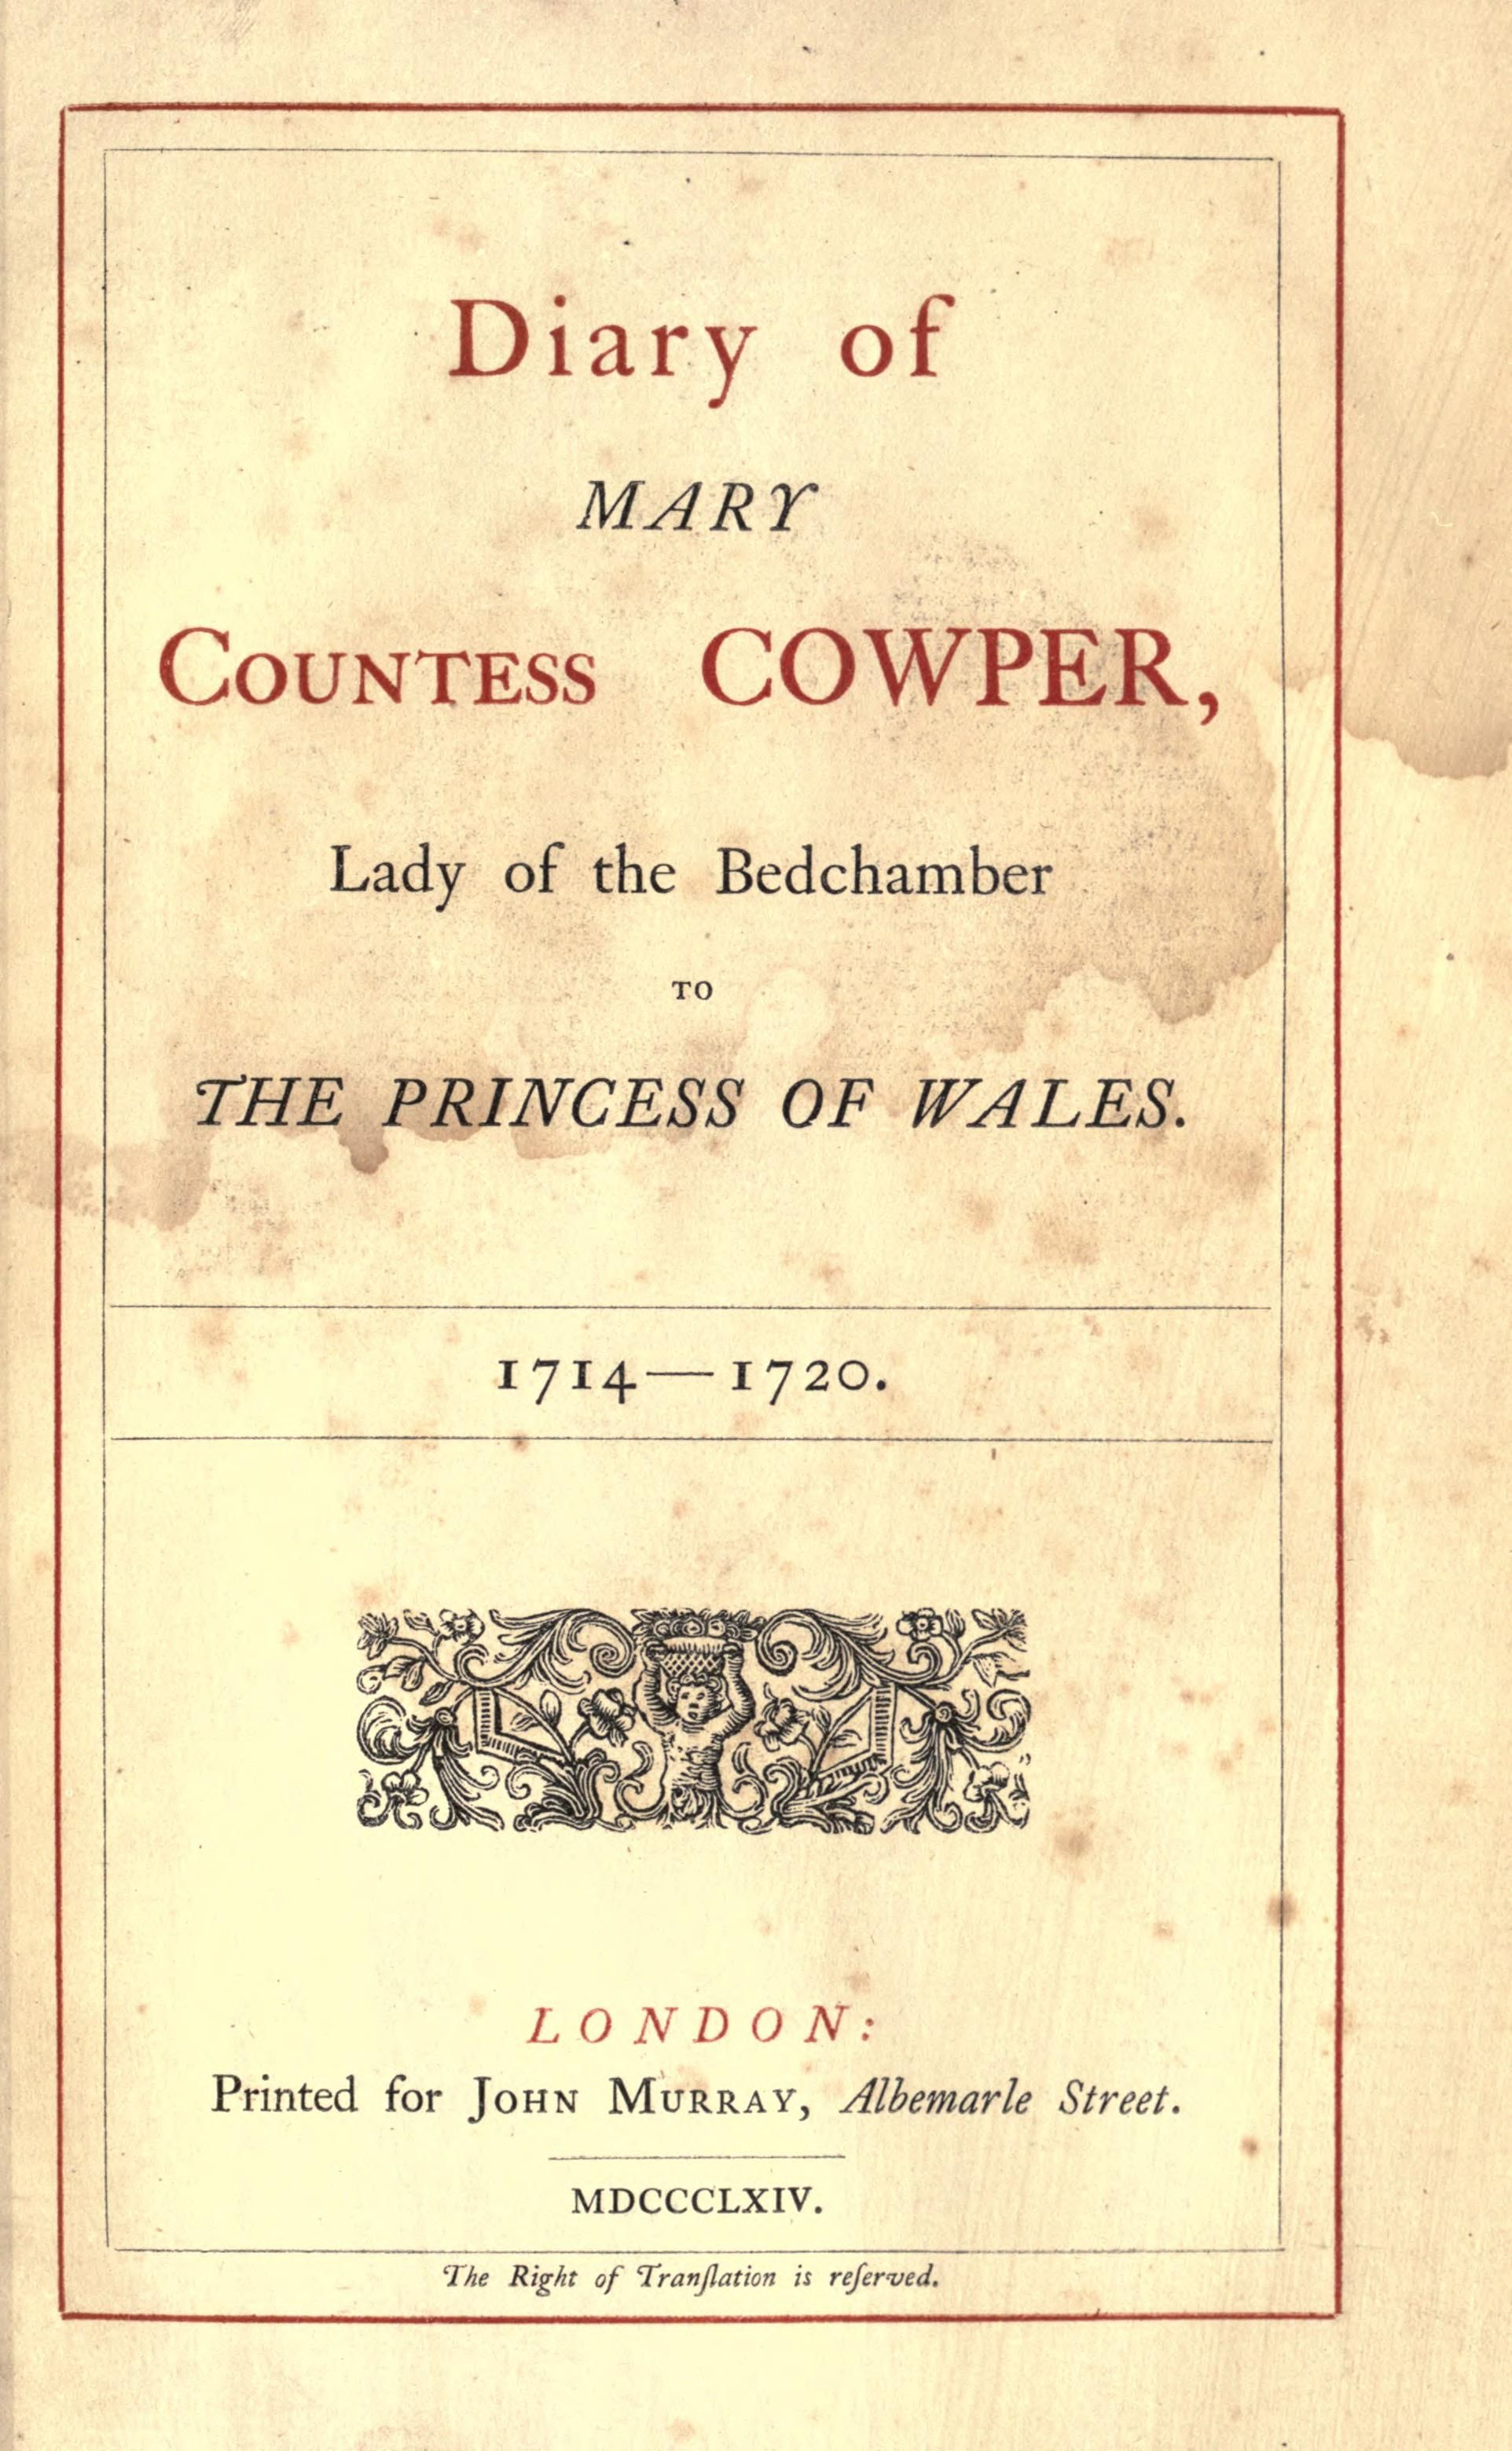 Diary of Mary countess Cowper, lady of the bedchamber to the Princess of Wales…